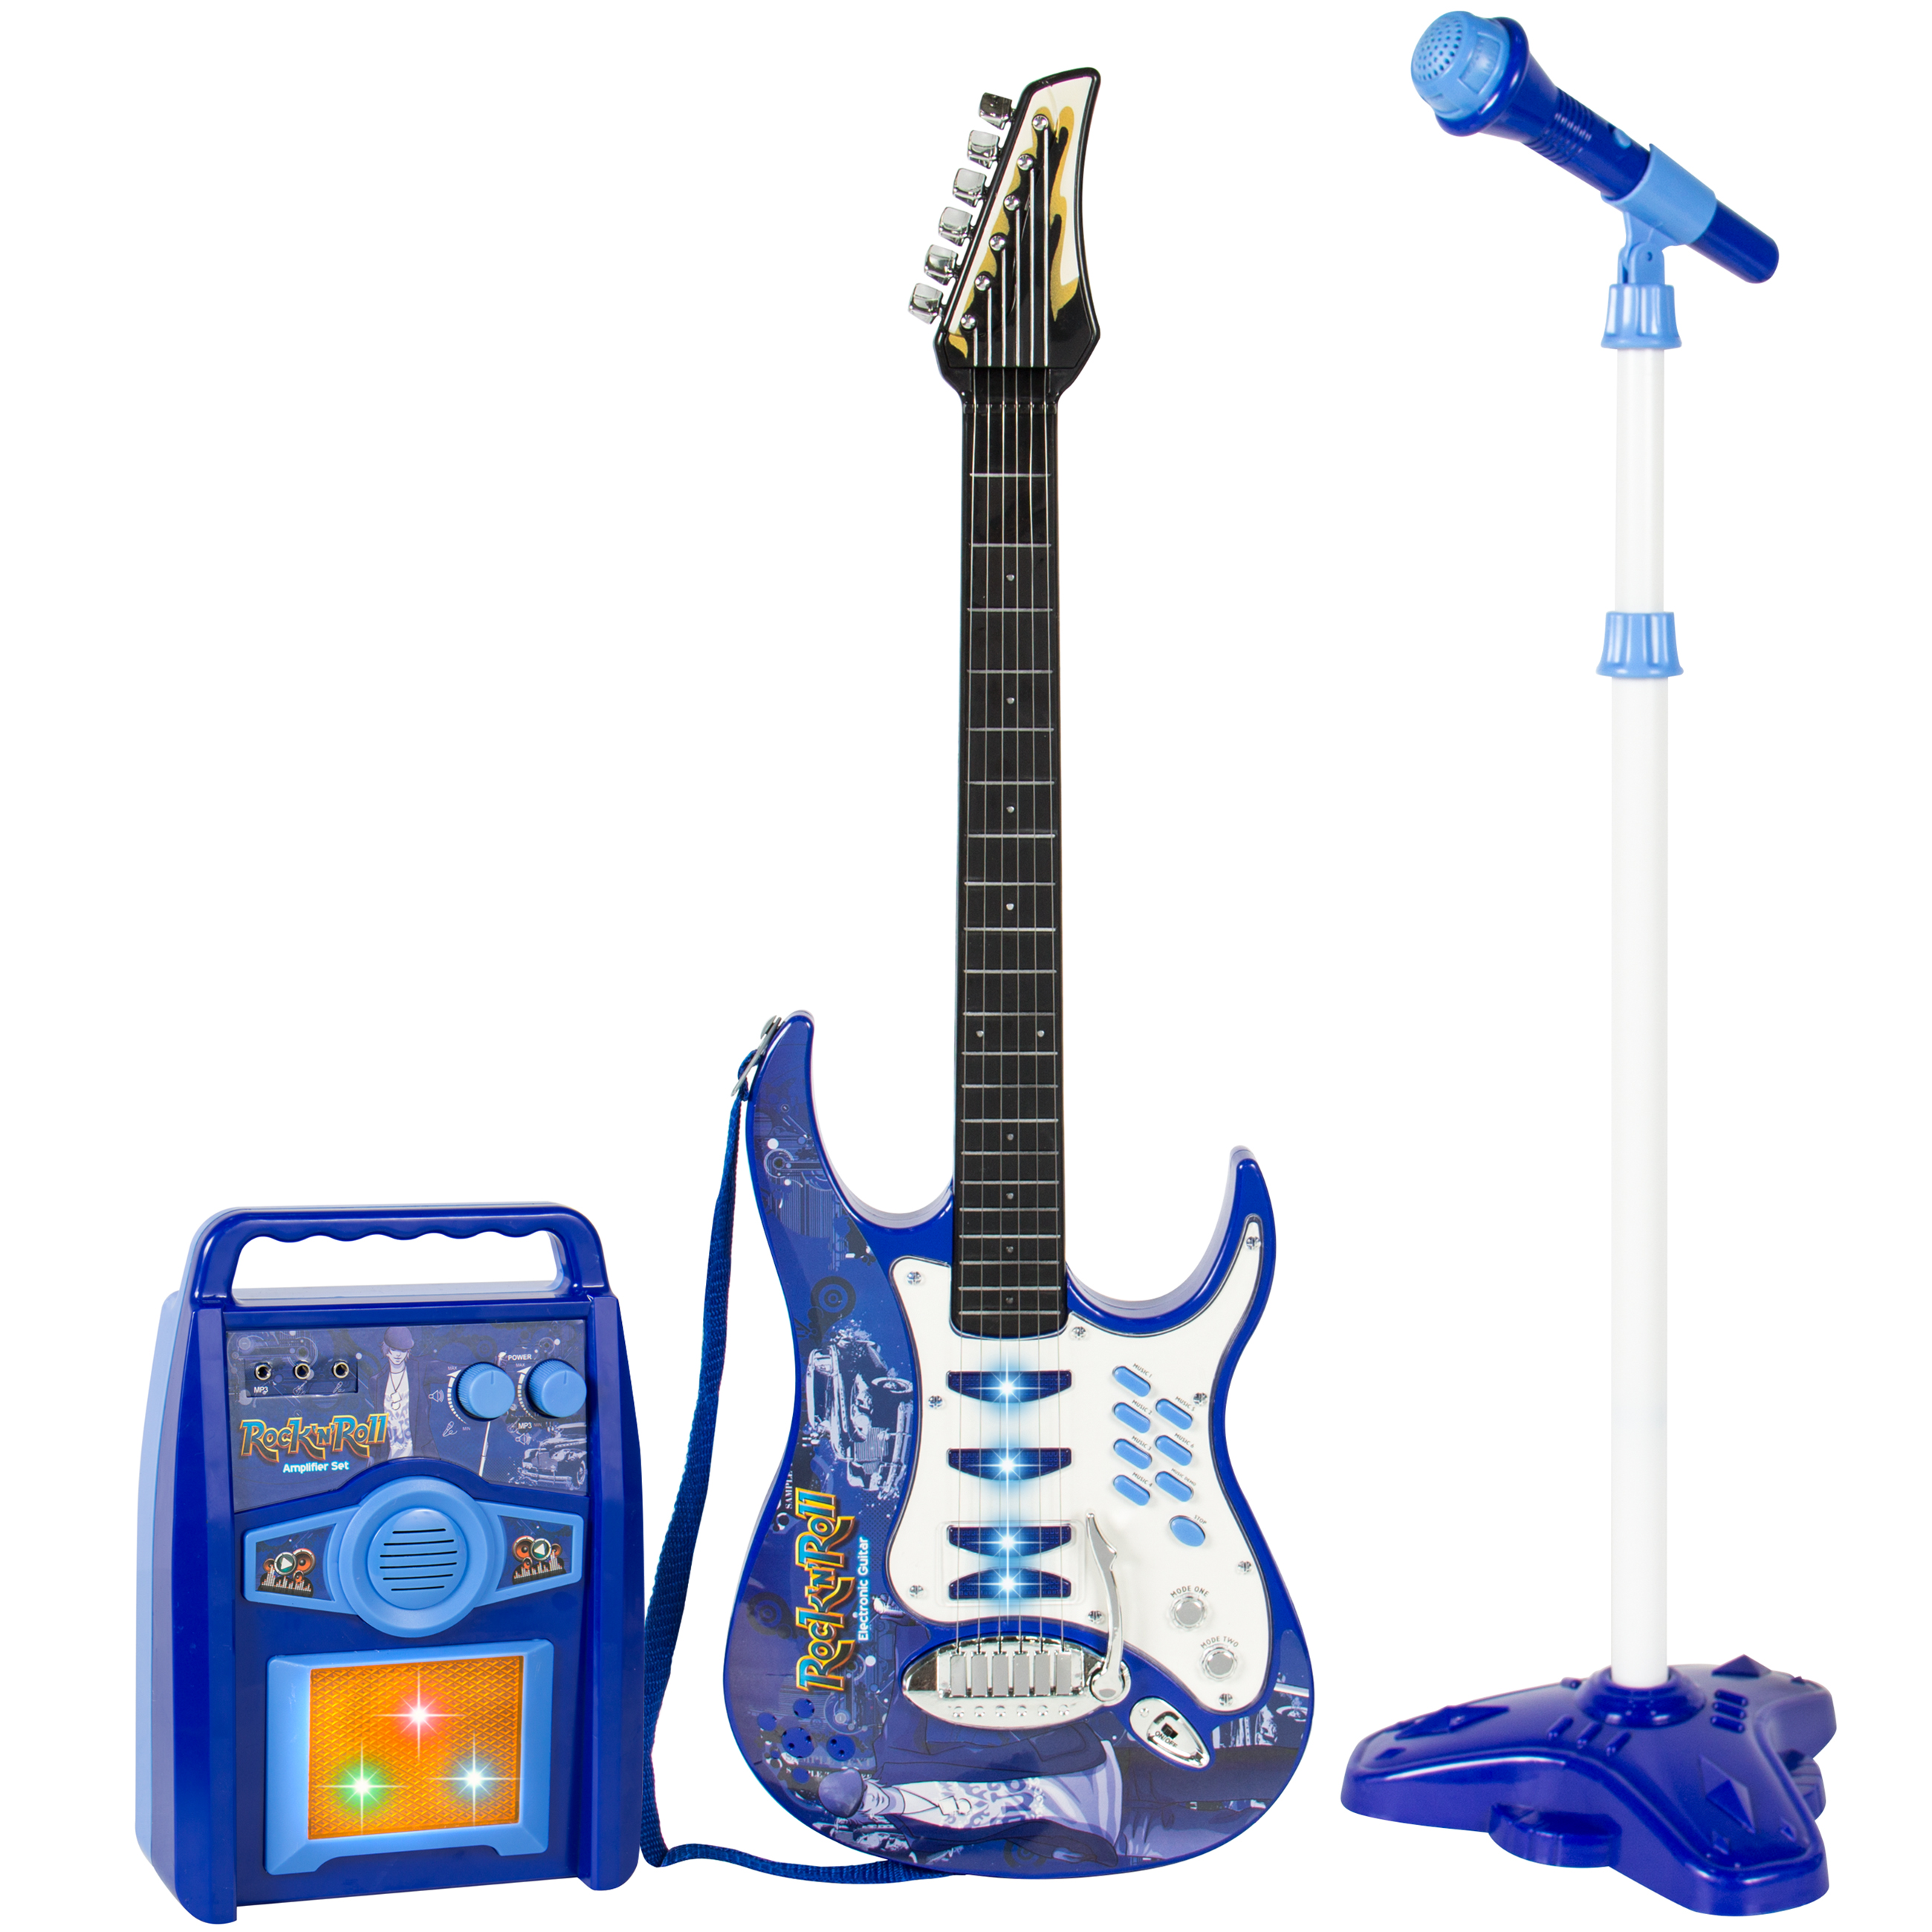 Best Choice Products Kids Electric Musical Guitar Play Set w  Microphone, Aux Cord, Amp... by Best Choice Products